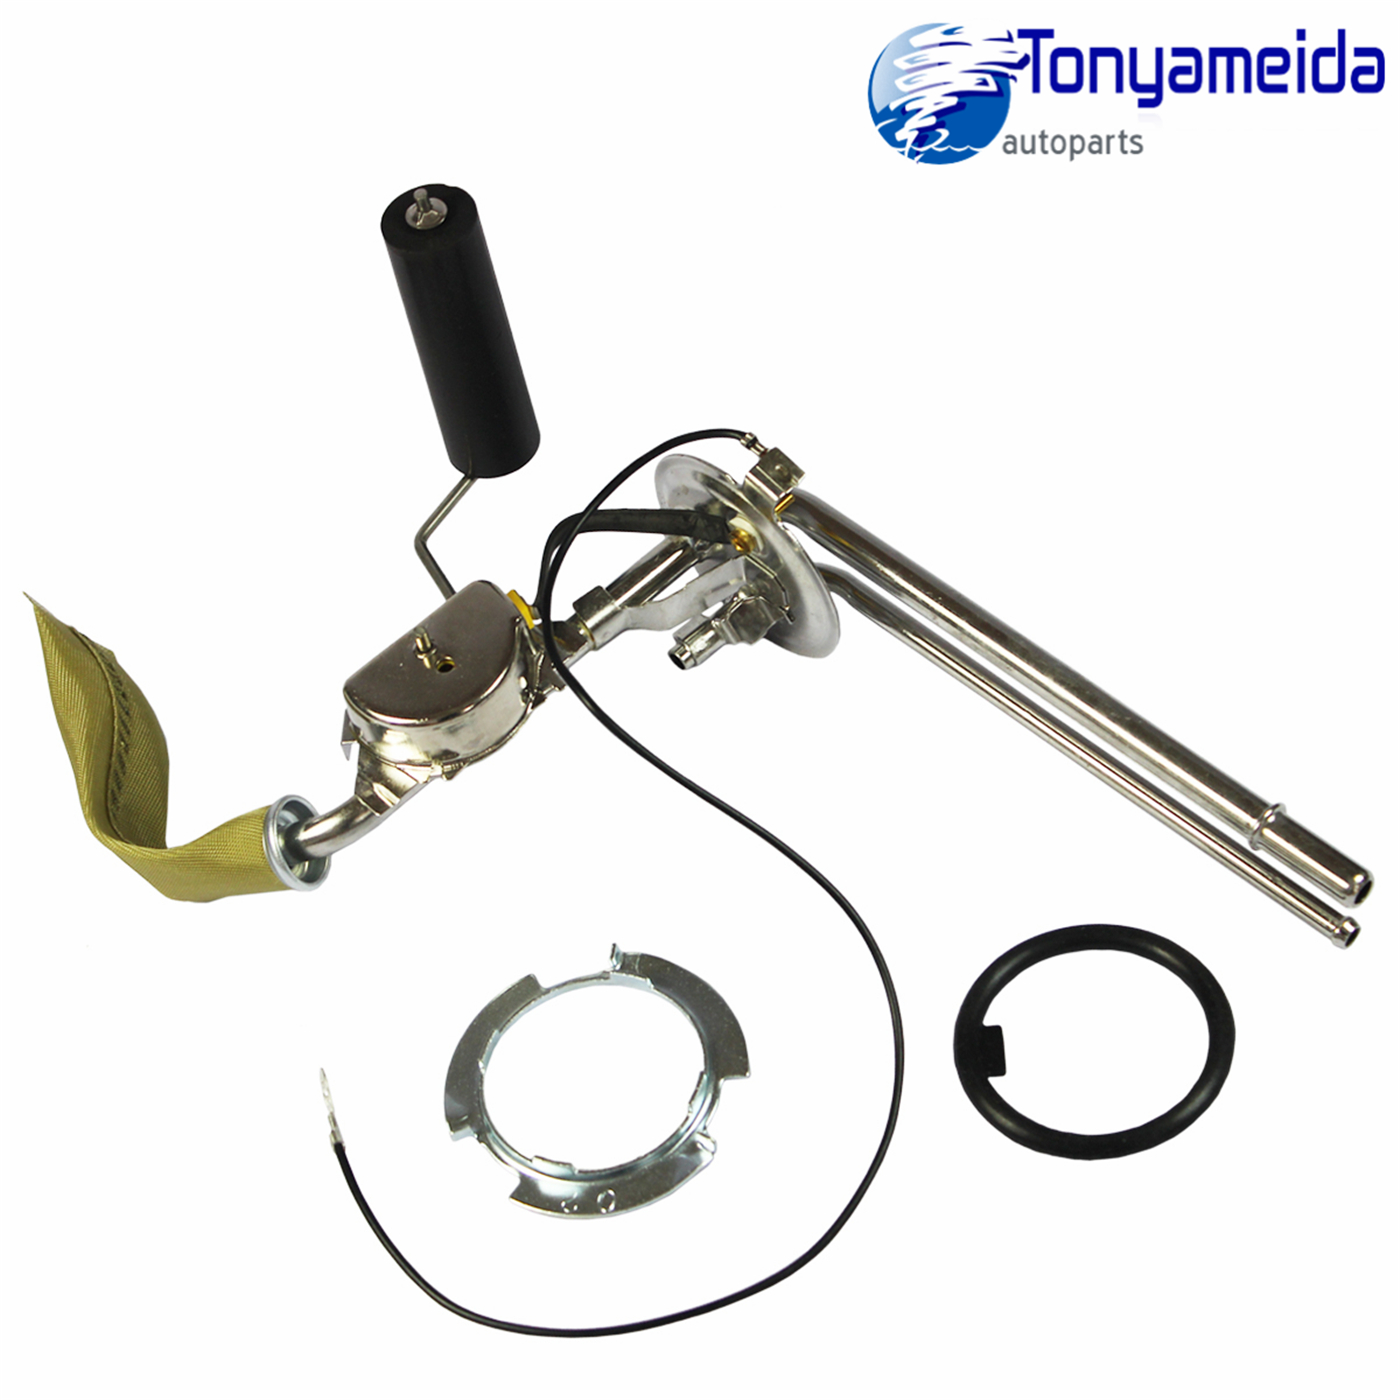 Stainless Steel Fuel Gas Tank Sending Unit Fits Chevy Oldsmobile Pontiac Buick